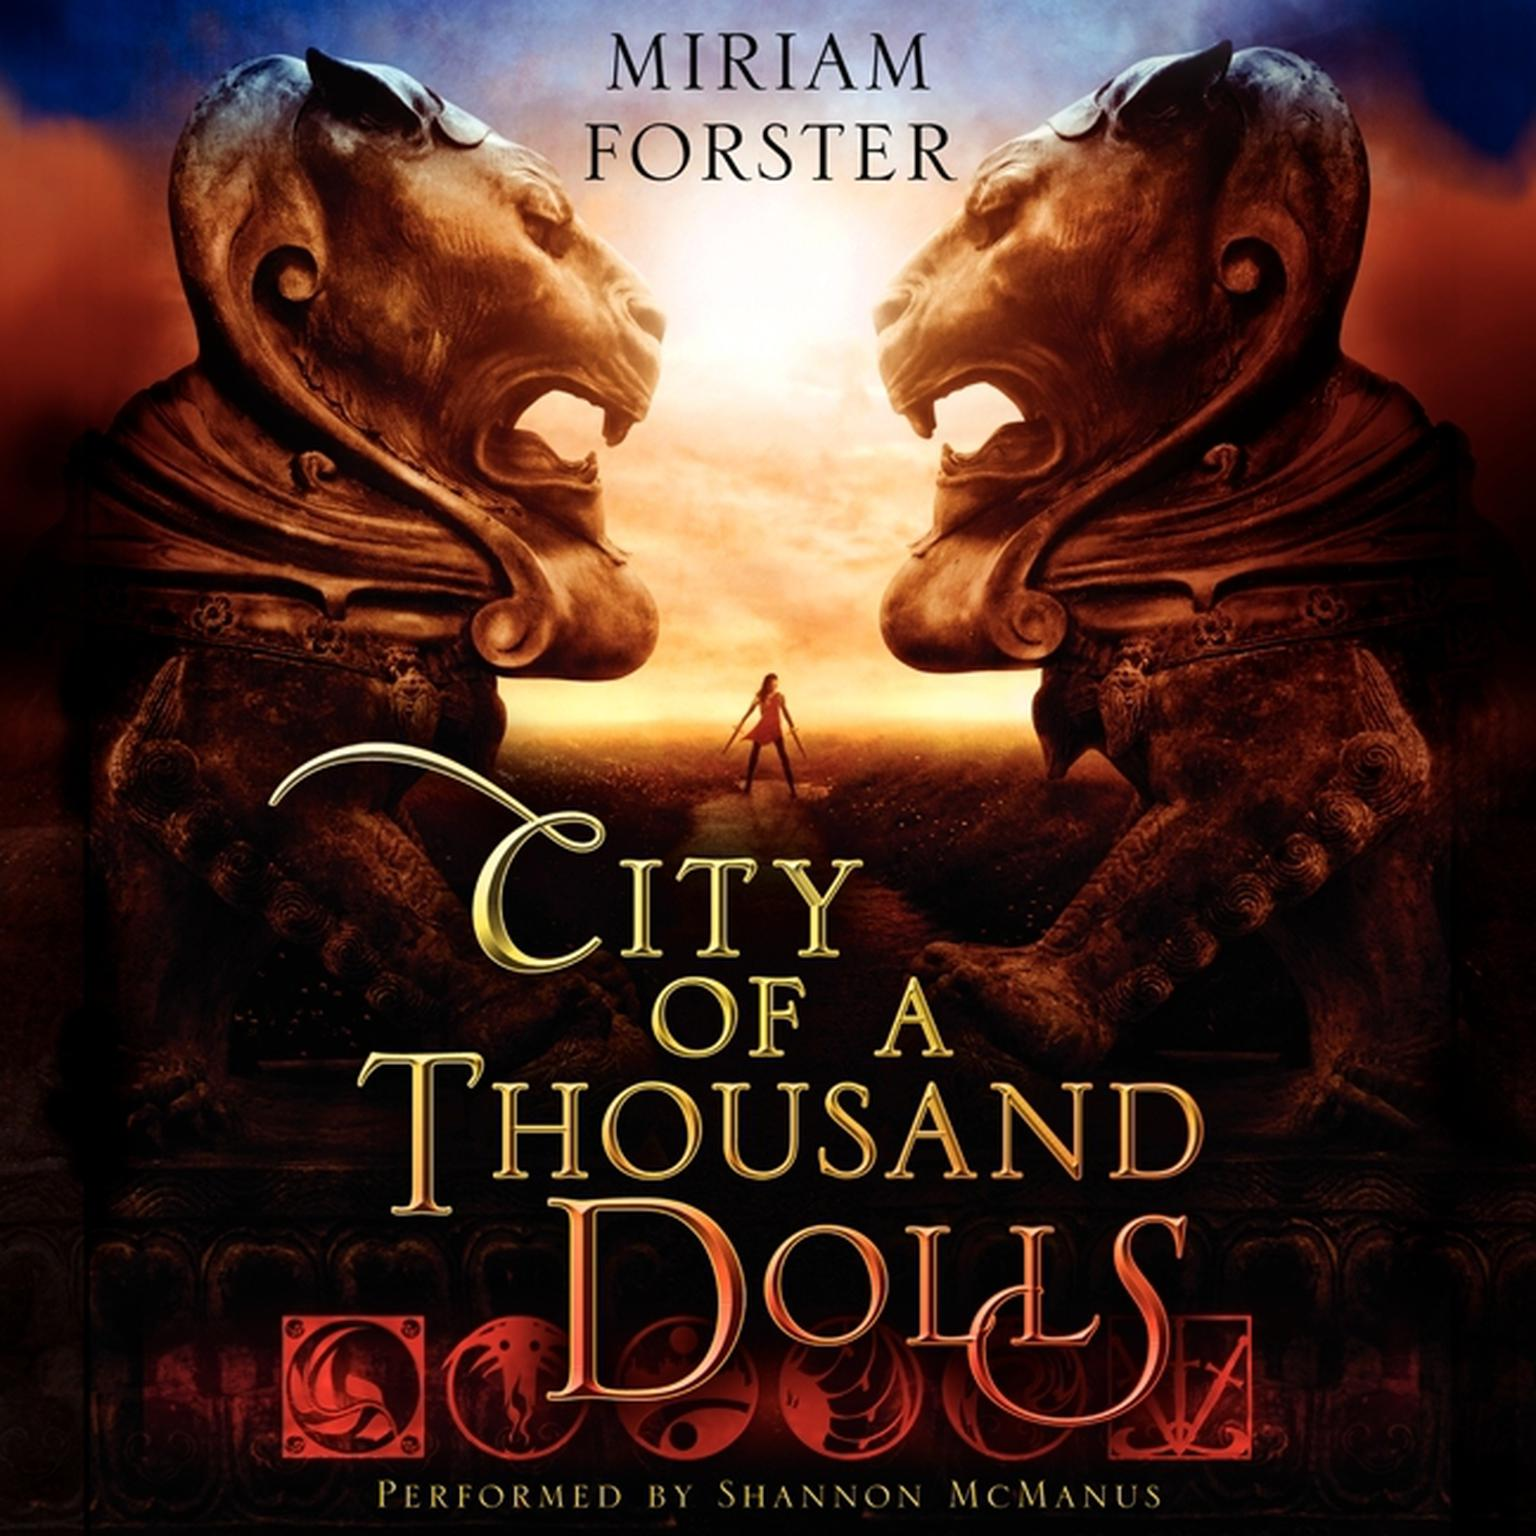 Printable City of a Thousand Dolls Audiobook Cover Art